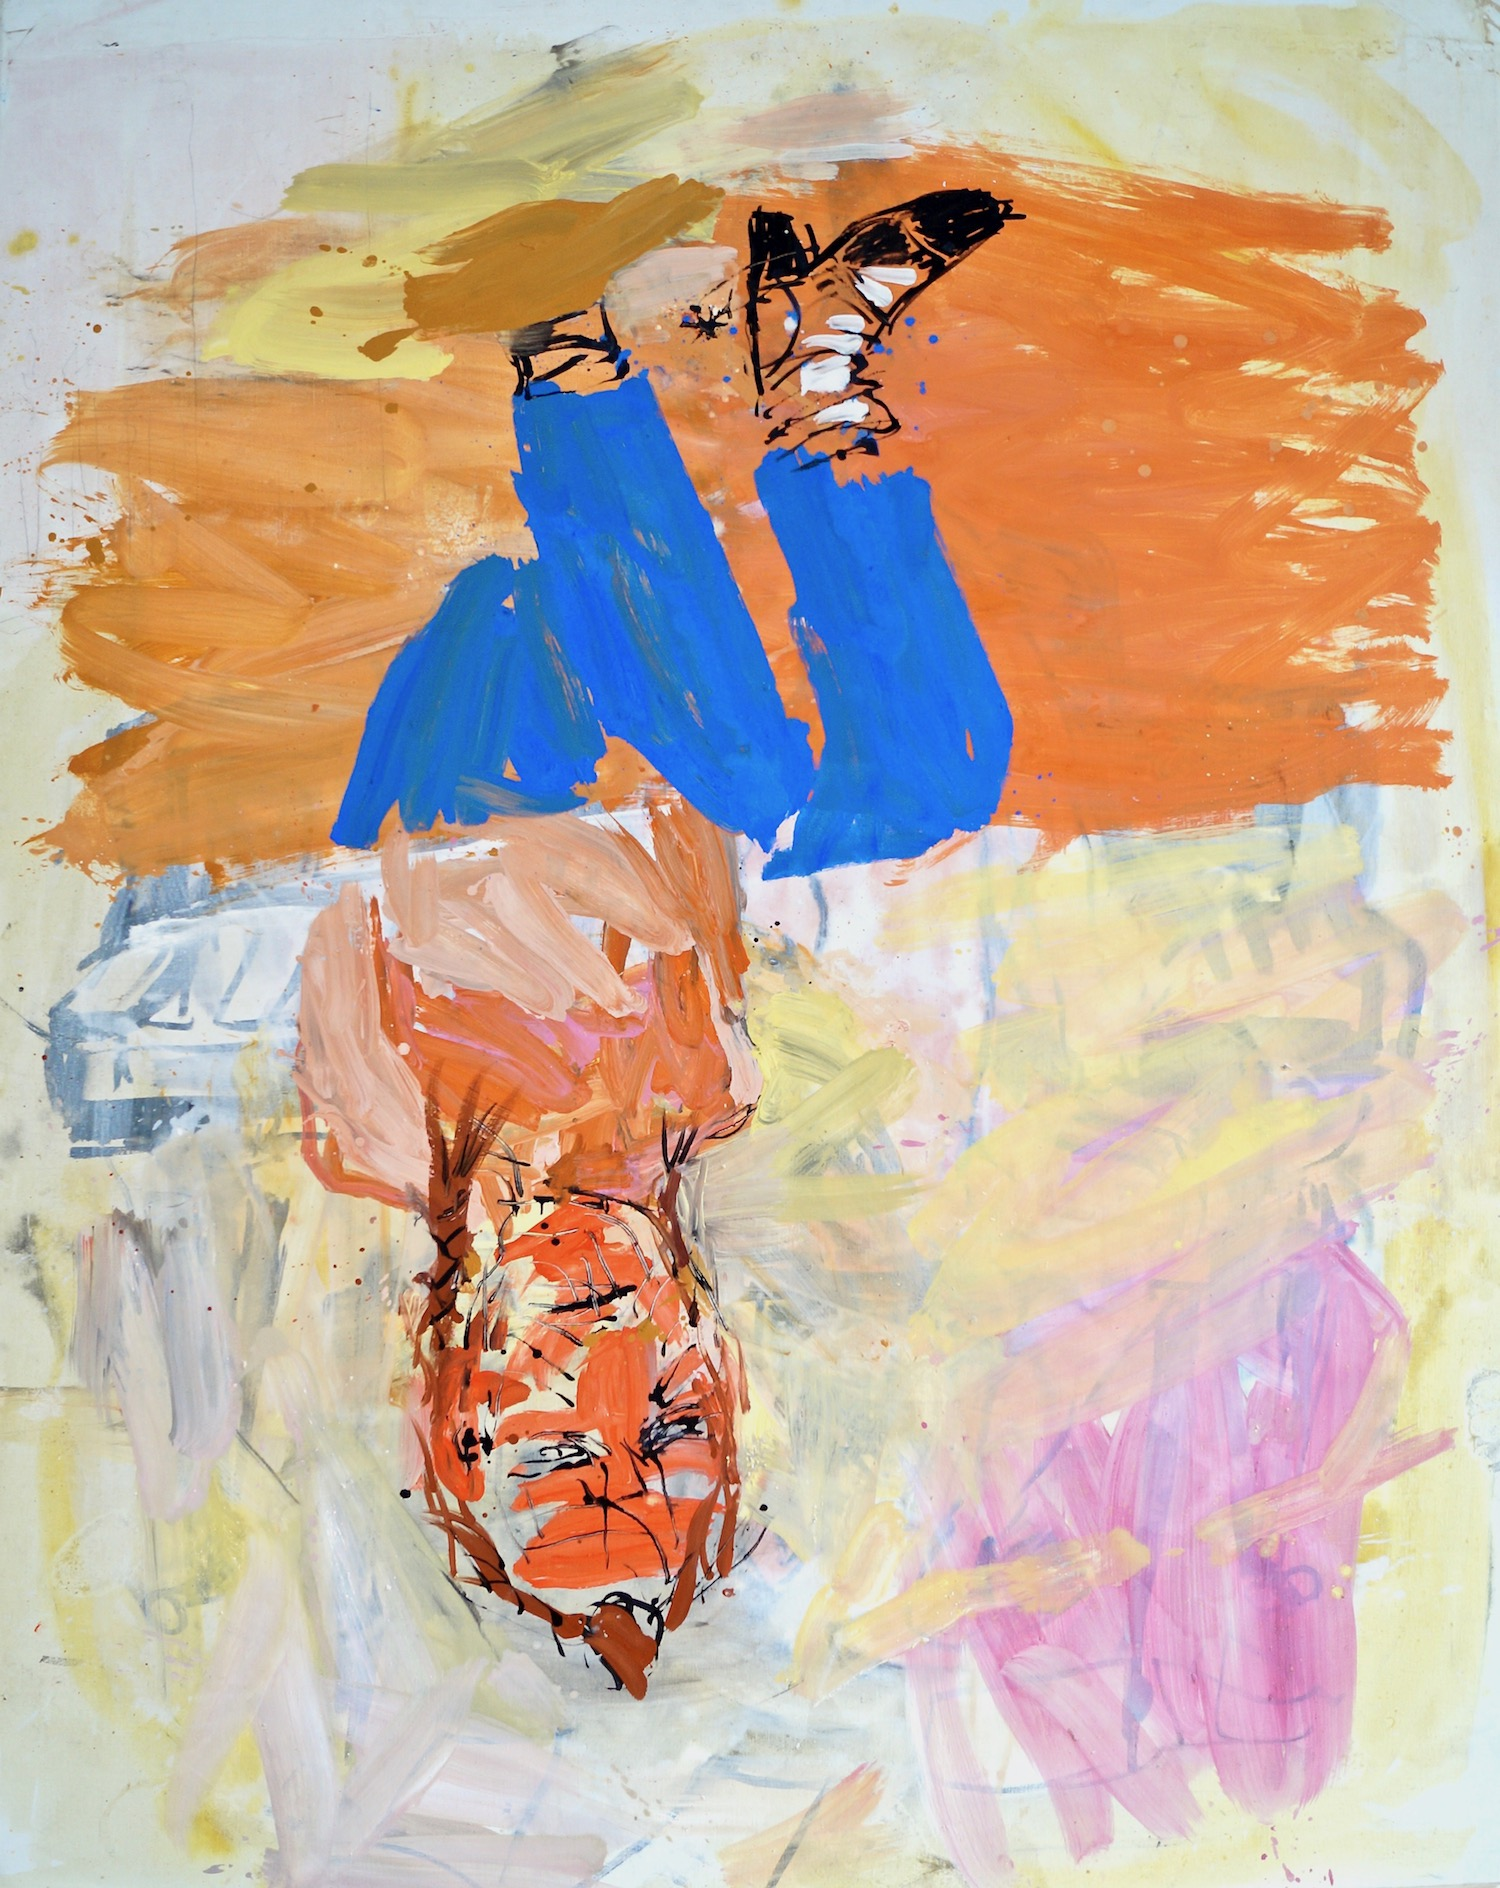 Georg Baselitz Victory Day, 31.VII.03 oil on canvas 208 x 166 cm | 82 x 65 1/3 in GB/M 2